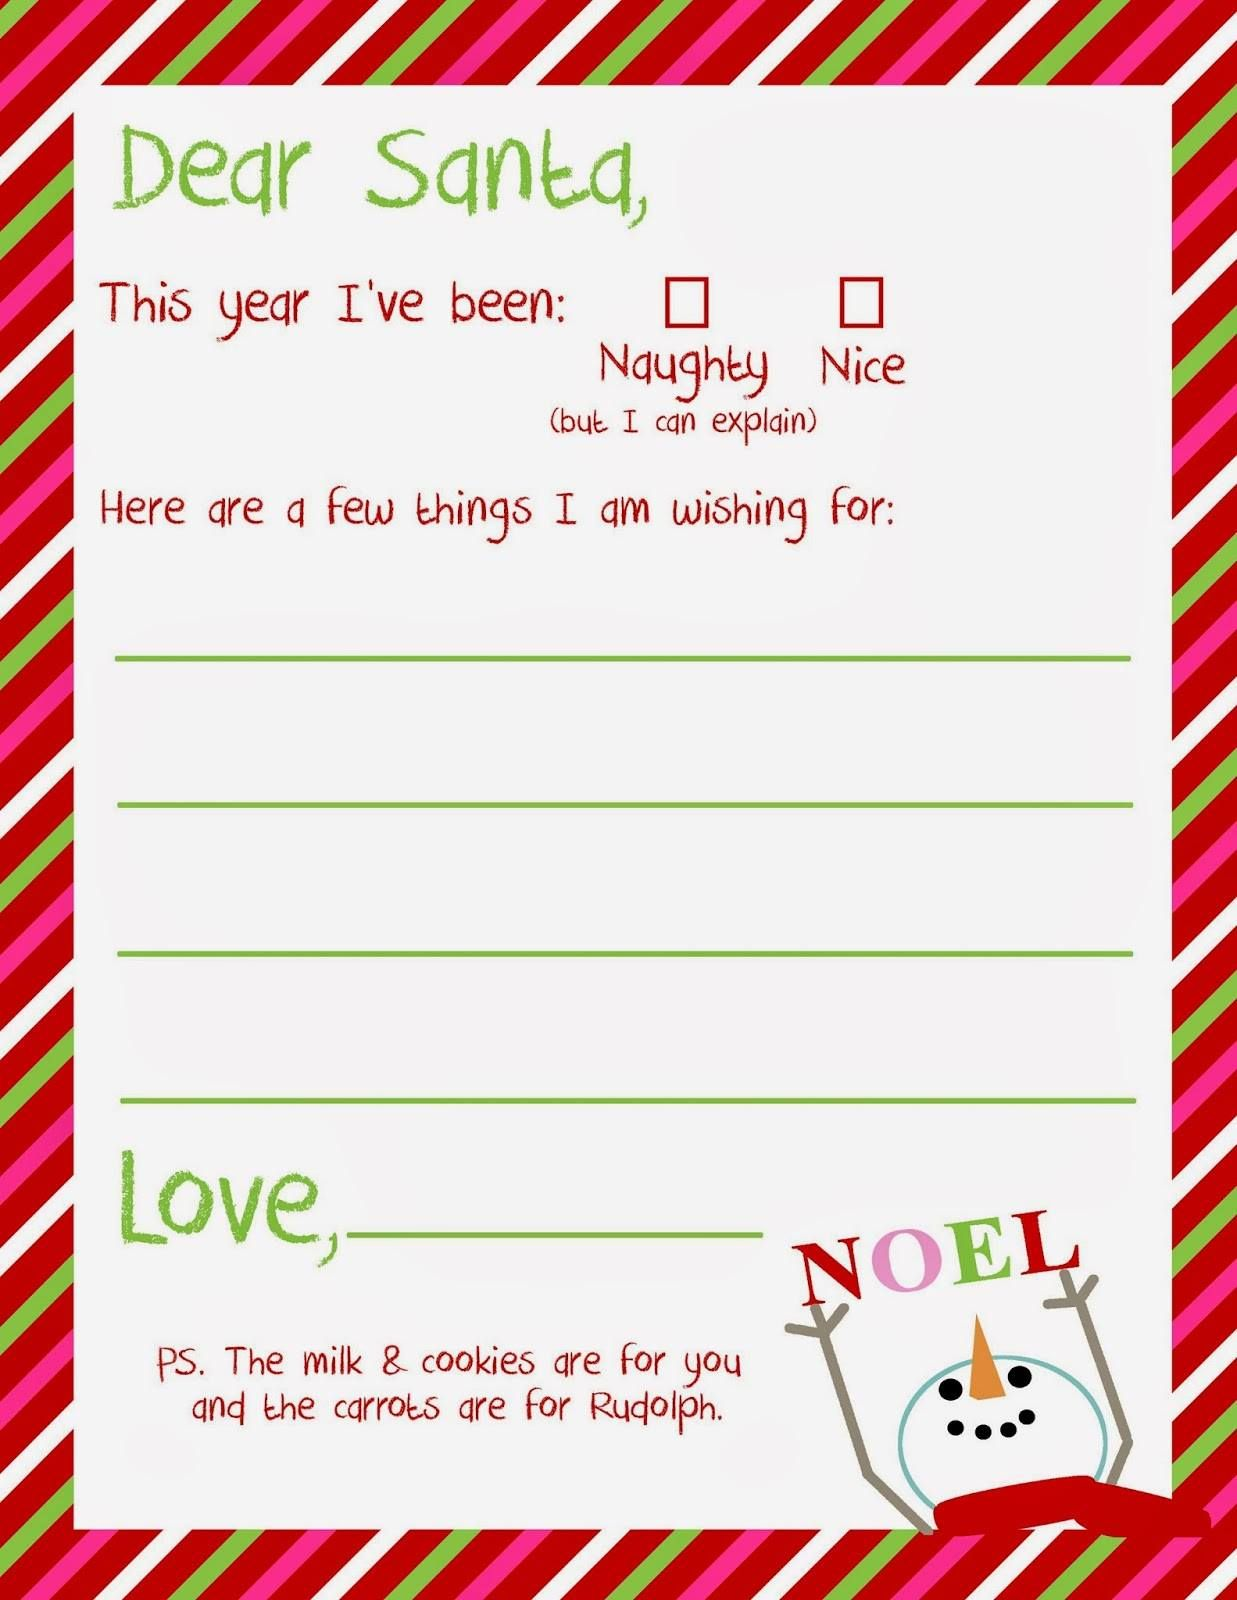 Cute And Simple Letter To Santa For Young Children